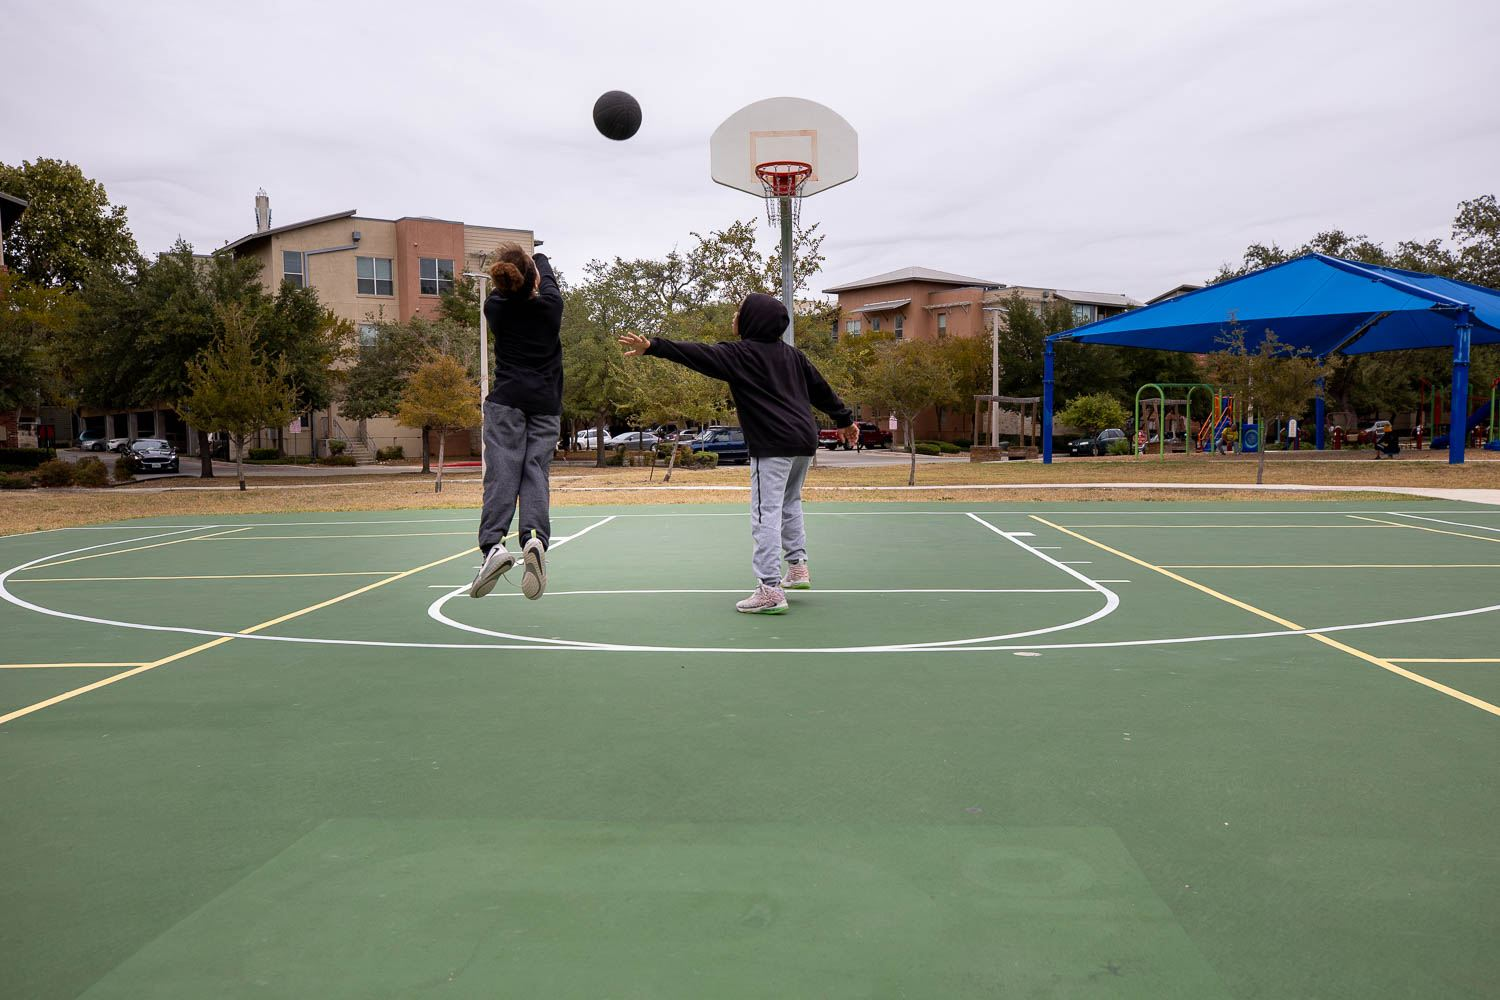 "Kids play basketball at the Labor Street Park court in October 2020. The San Antonio Housing Authority has been redeveloping the community since the Clinton administration. <a href=""https://saheron.com/victoria-commons-saha-master-plan-final-phases/"">Read more.</a> <b><em>Photo by Stephanie Marquez 